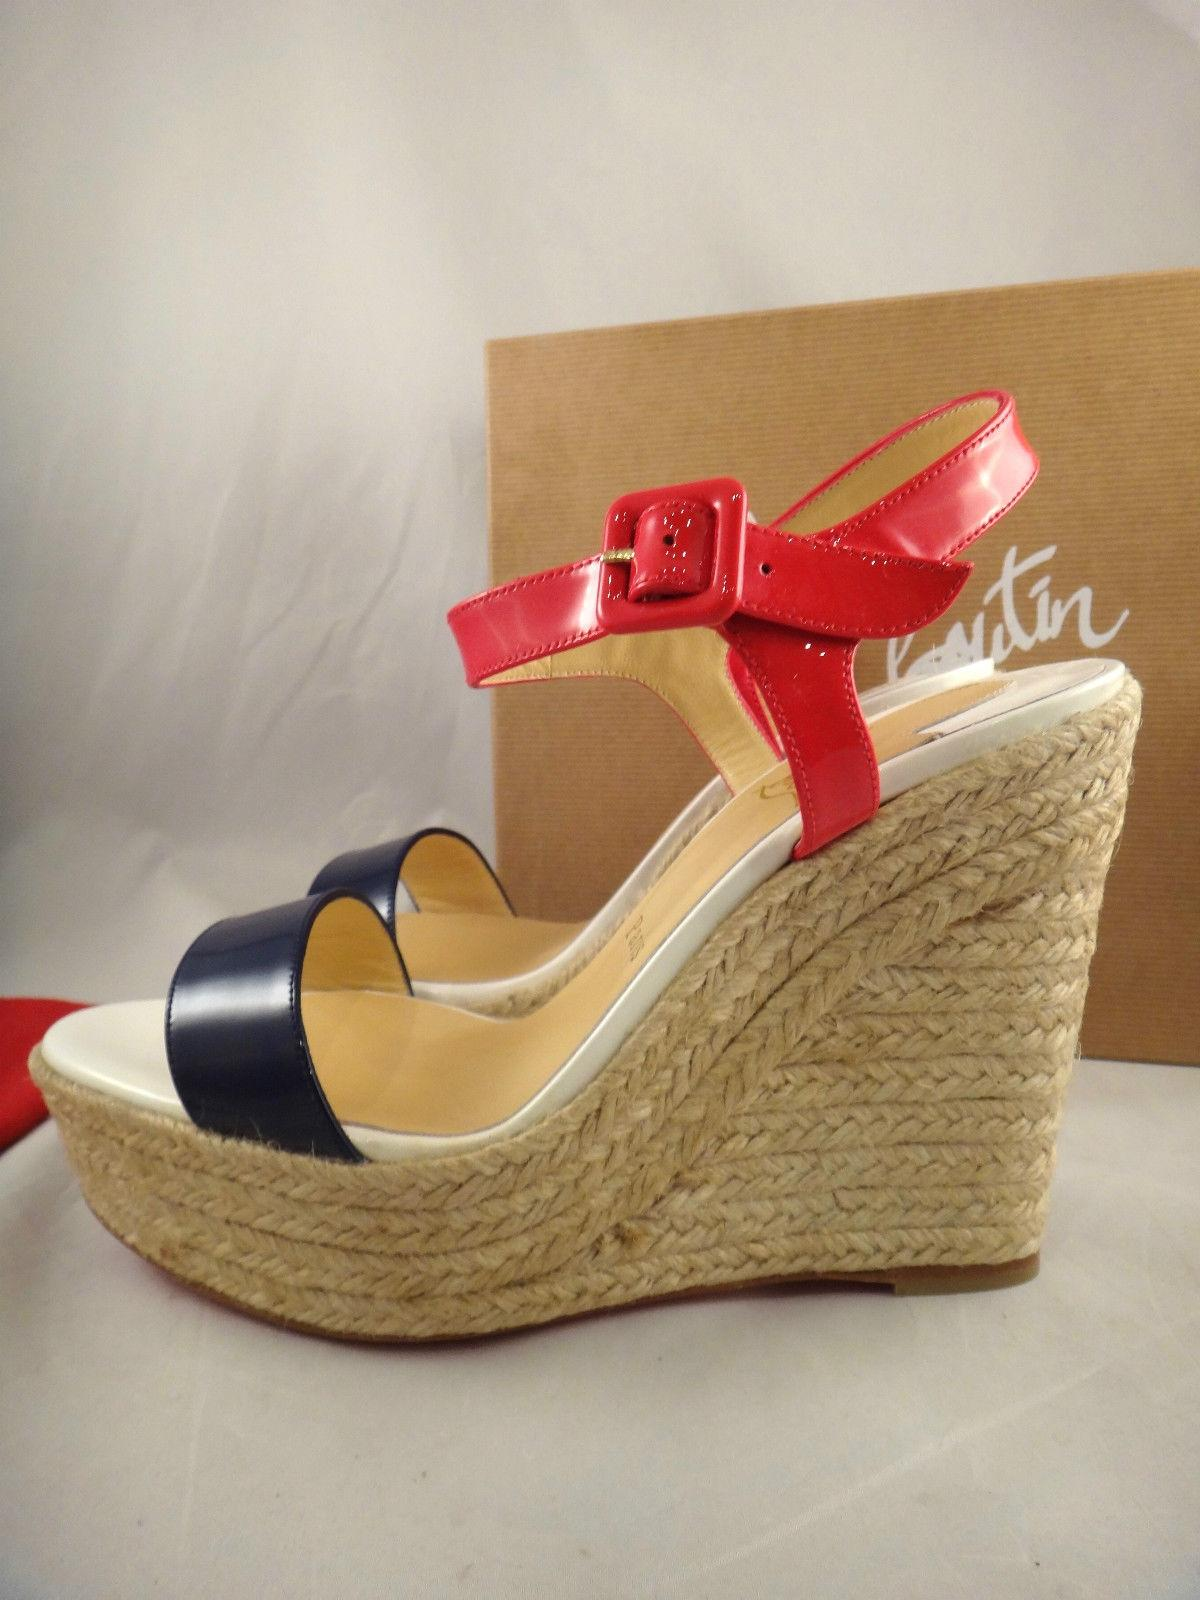 Christian Louboutin Wedges Chica